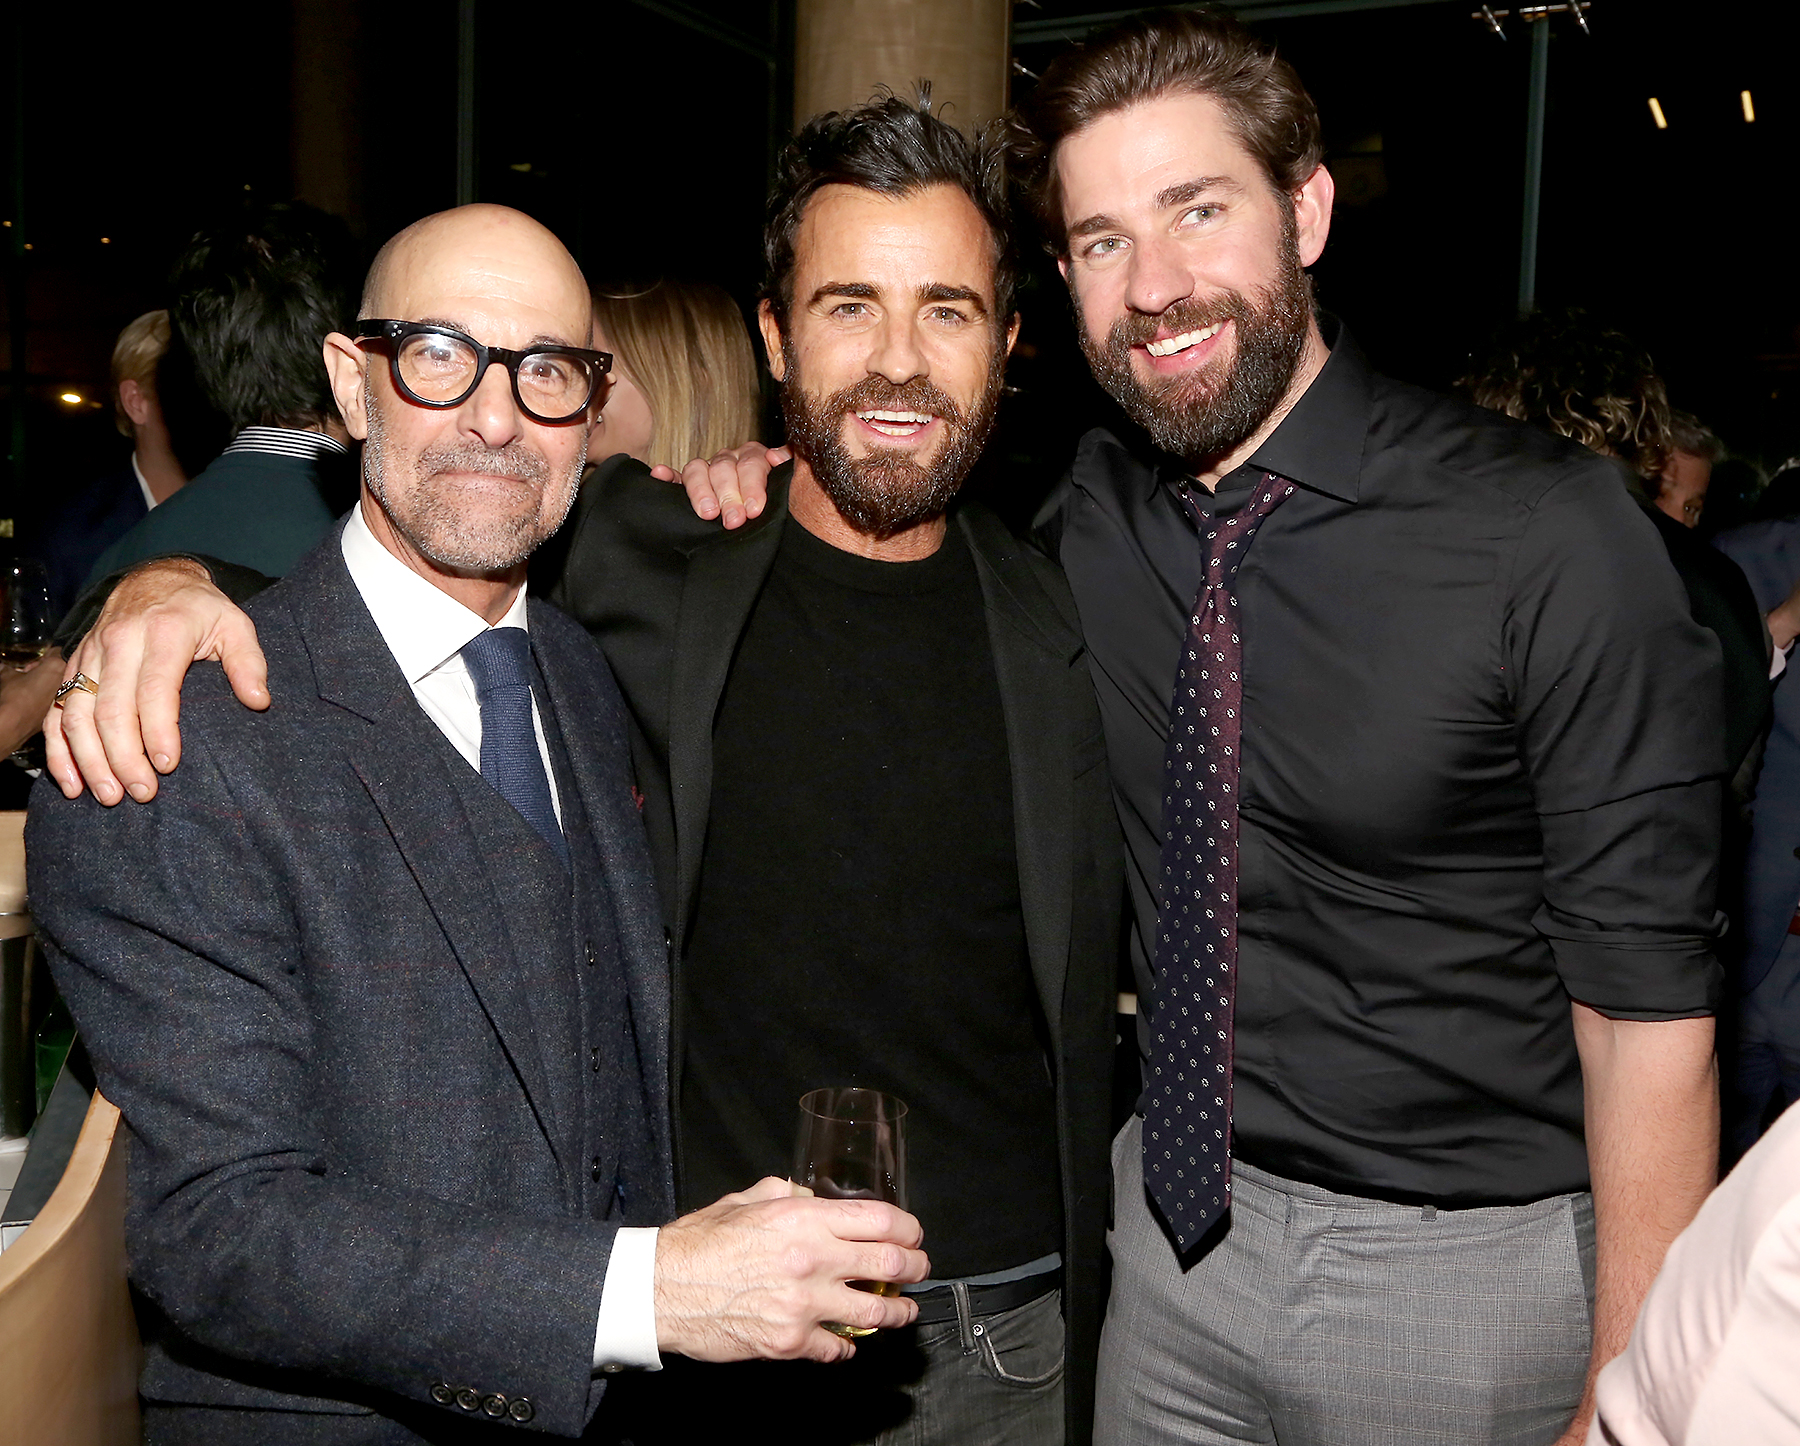 Stanley-Tucci,-Justin-Theroux-and-John-Krasinski - Stanley Tucci, Justin Theroux and John Krasinski attend the 'A Quiet Place' afterparty in New York City on April 2, 2018.